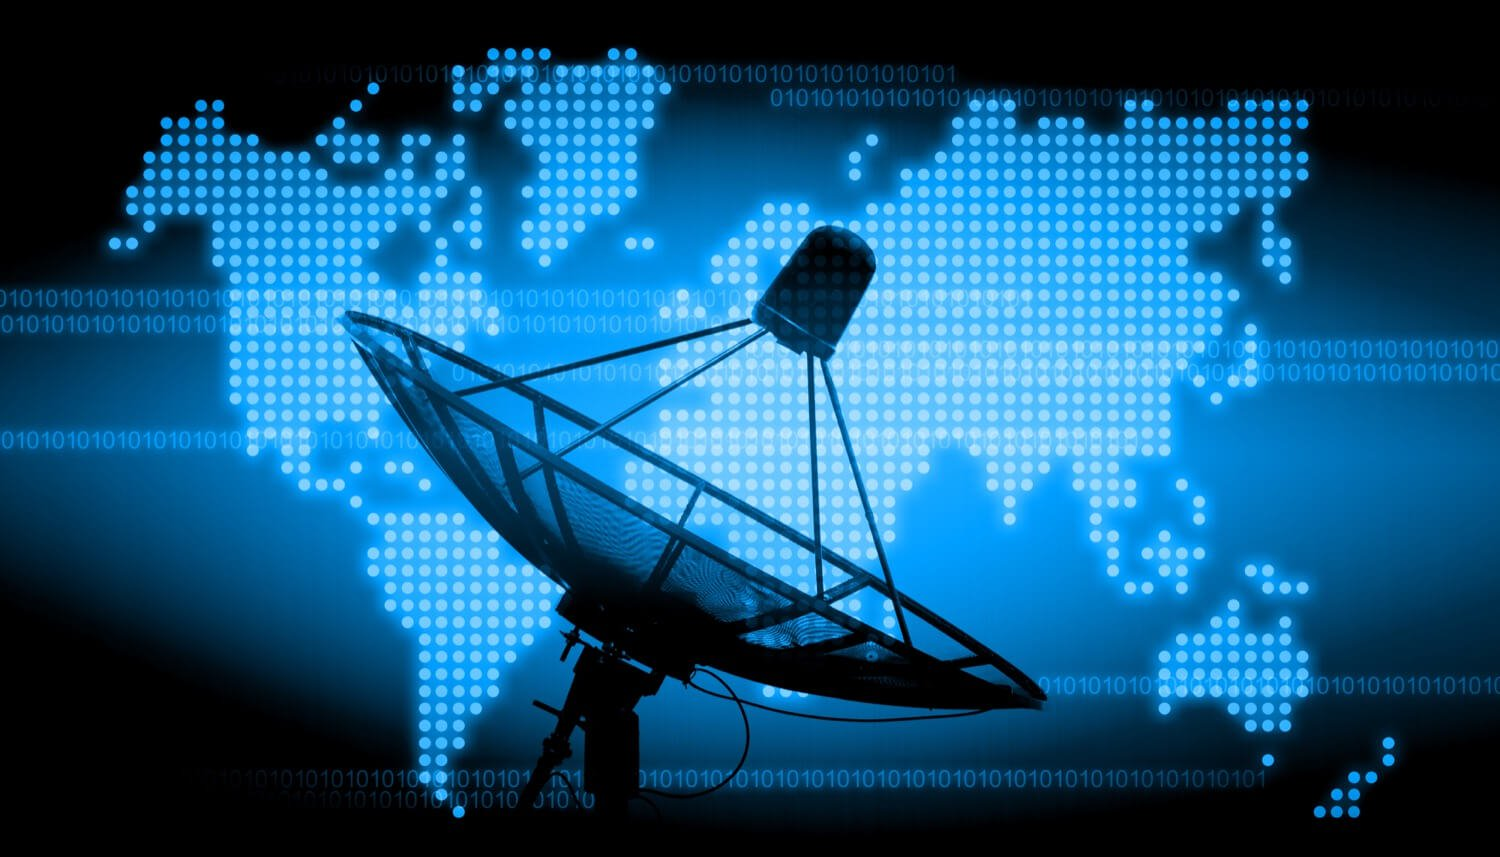 The hacker group seized control of satellites and operators